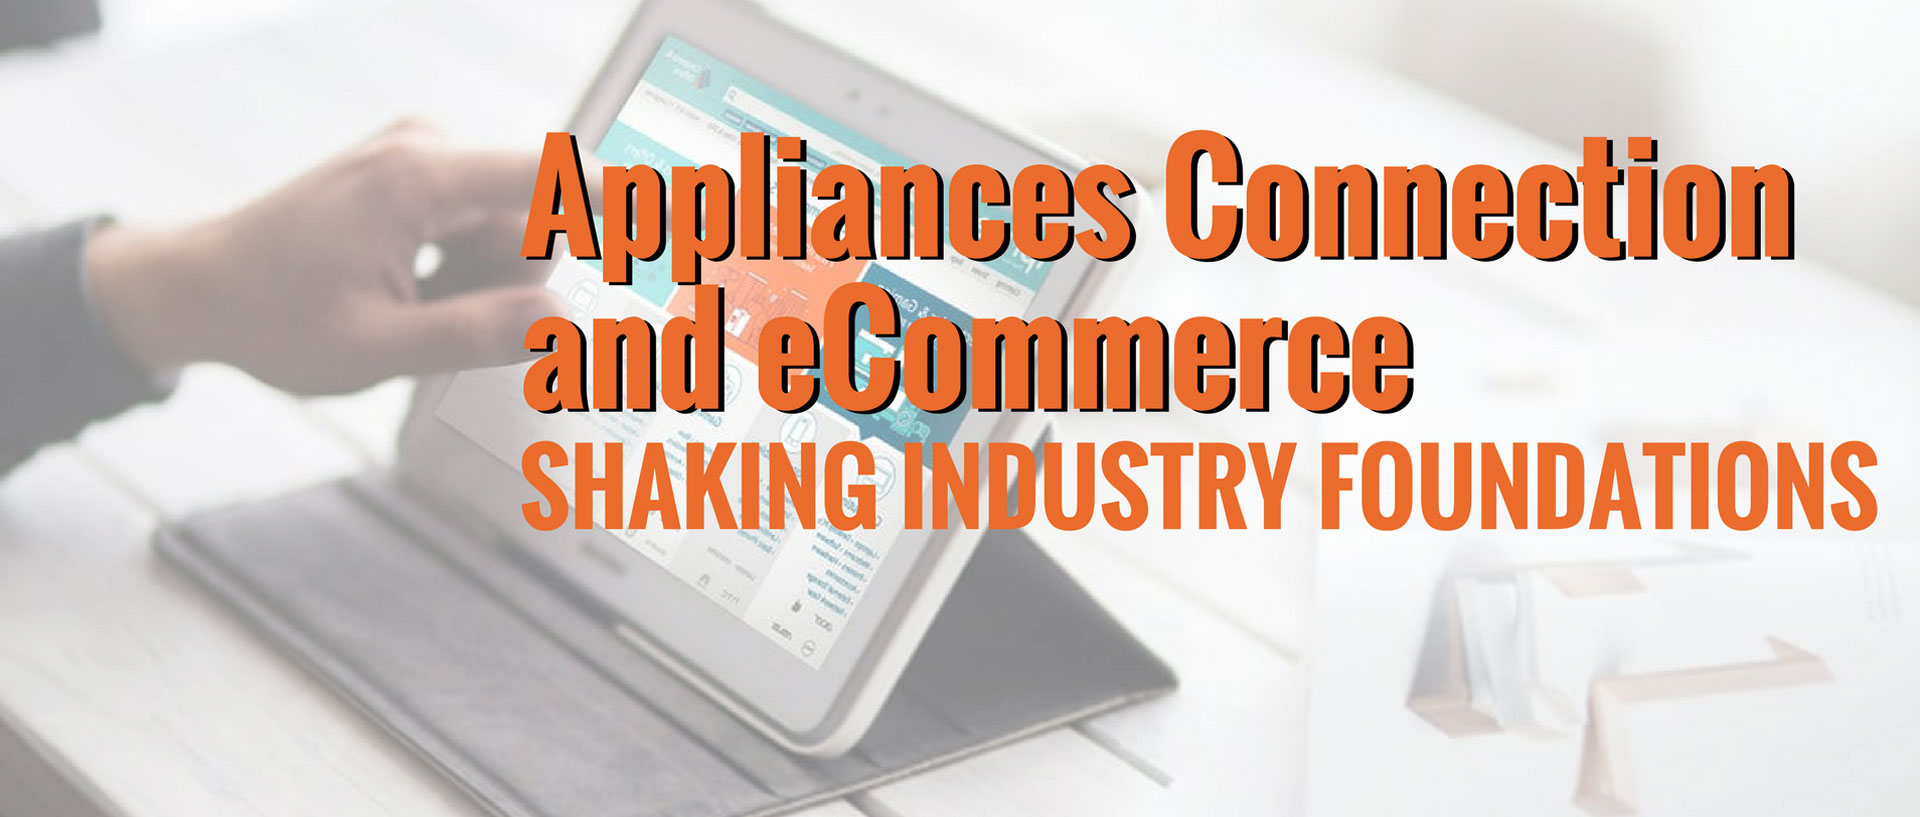 Appliances Connection and eCommerce - Shaking Industry Foundations